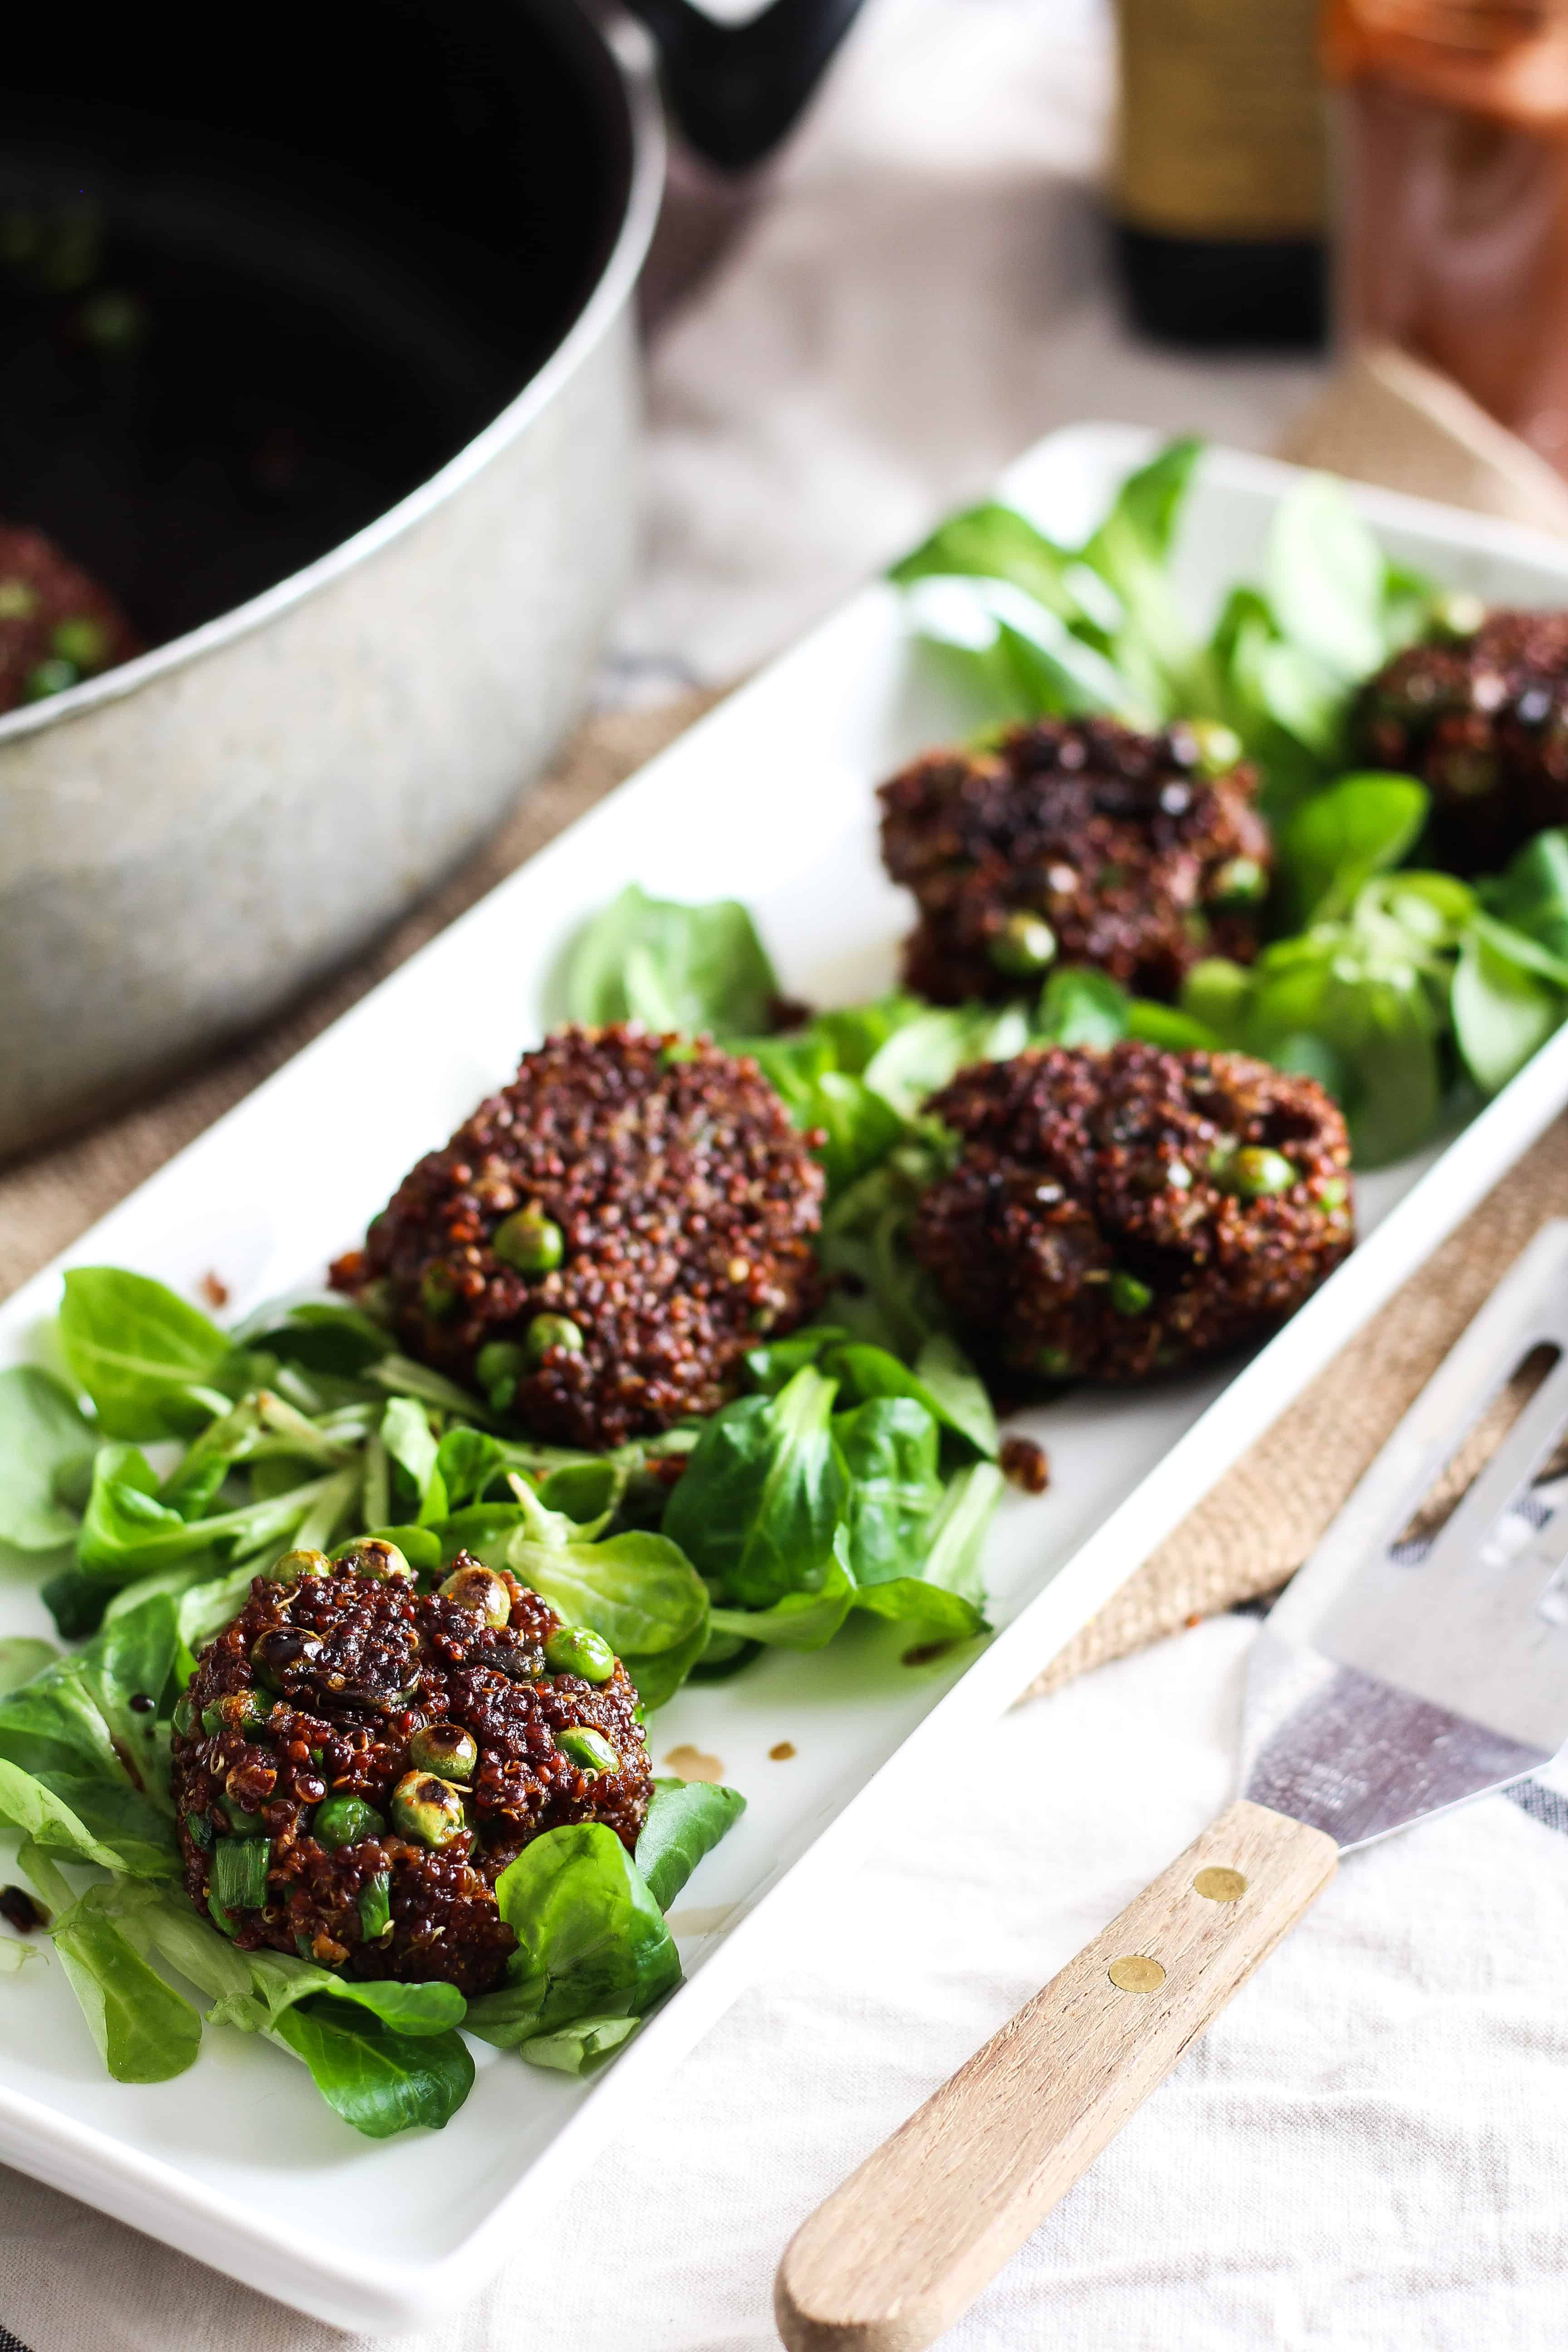 These fiber and protein-rich quinoa cakes or fritters are the perfect plant-based entree, snack, or party appetizer. Crunchy, delicious, and vegetarian!